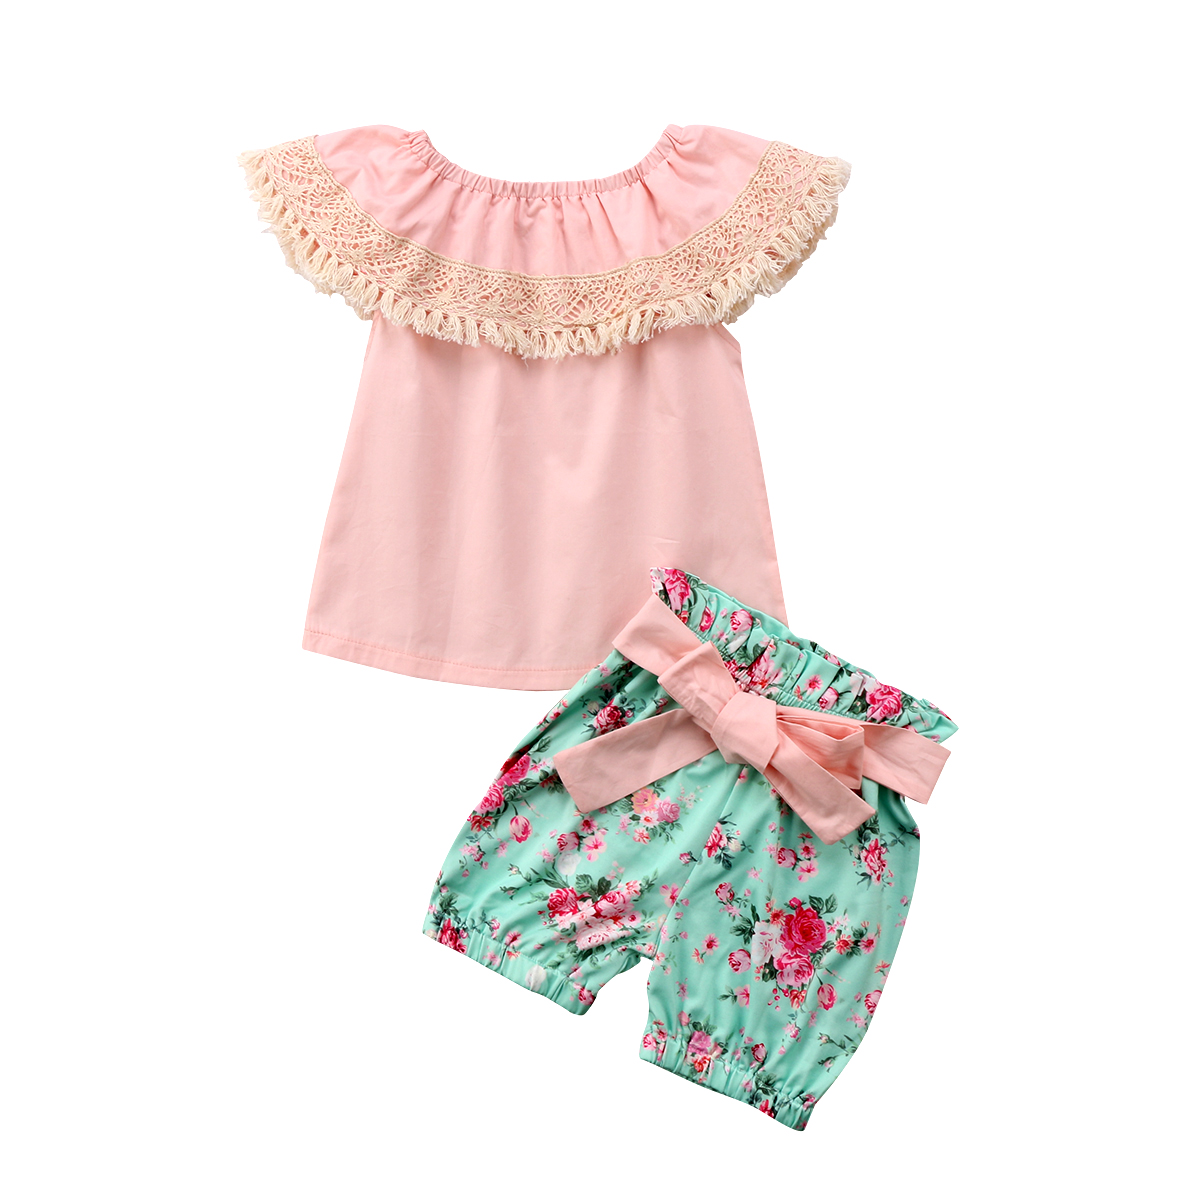 Toddler Kids Baby Girl Lace Tassels Floral Princess Summer Clothes Sunsuit Sleeveless Cotton T-shirt Shorts Romper Clothing Sets 2pcs ruffles newborn baby clothes 2017 summer princess girls floral dress tops baby bloomers shorts bottom outfits sunsuit 0 24m